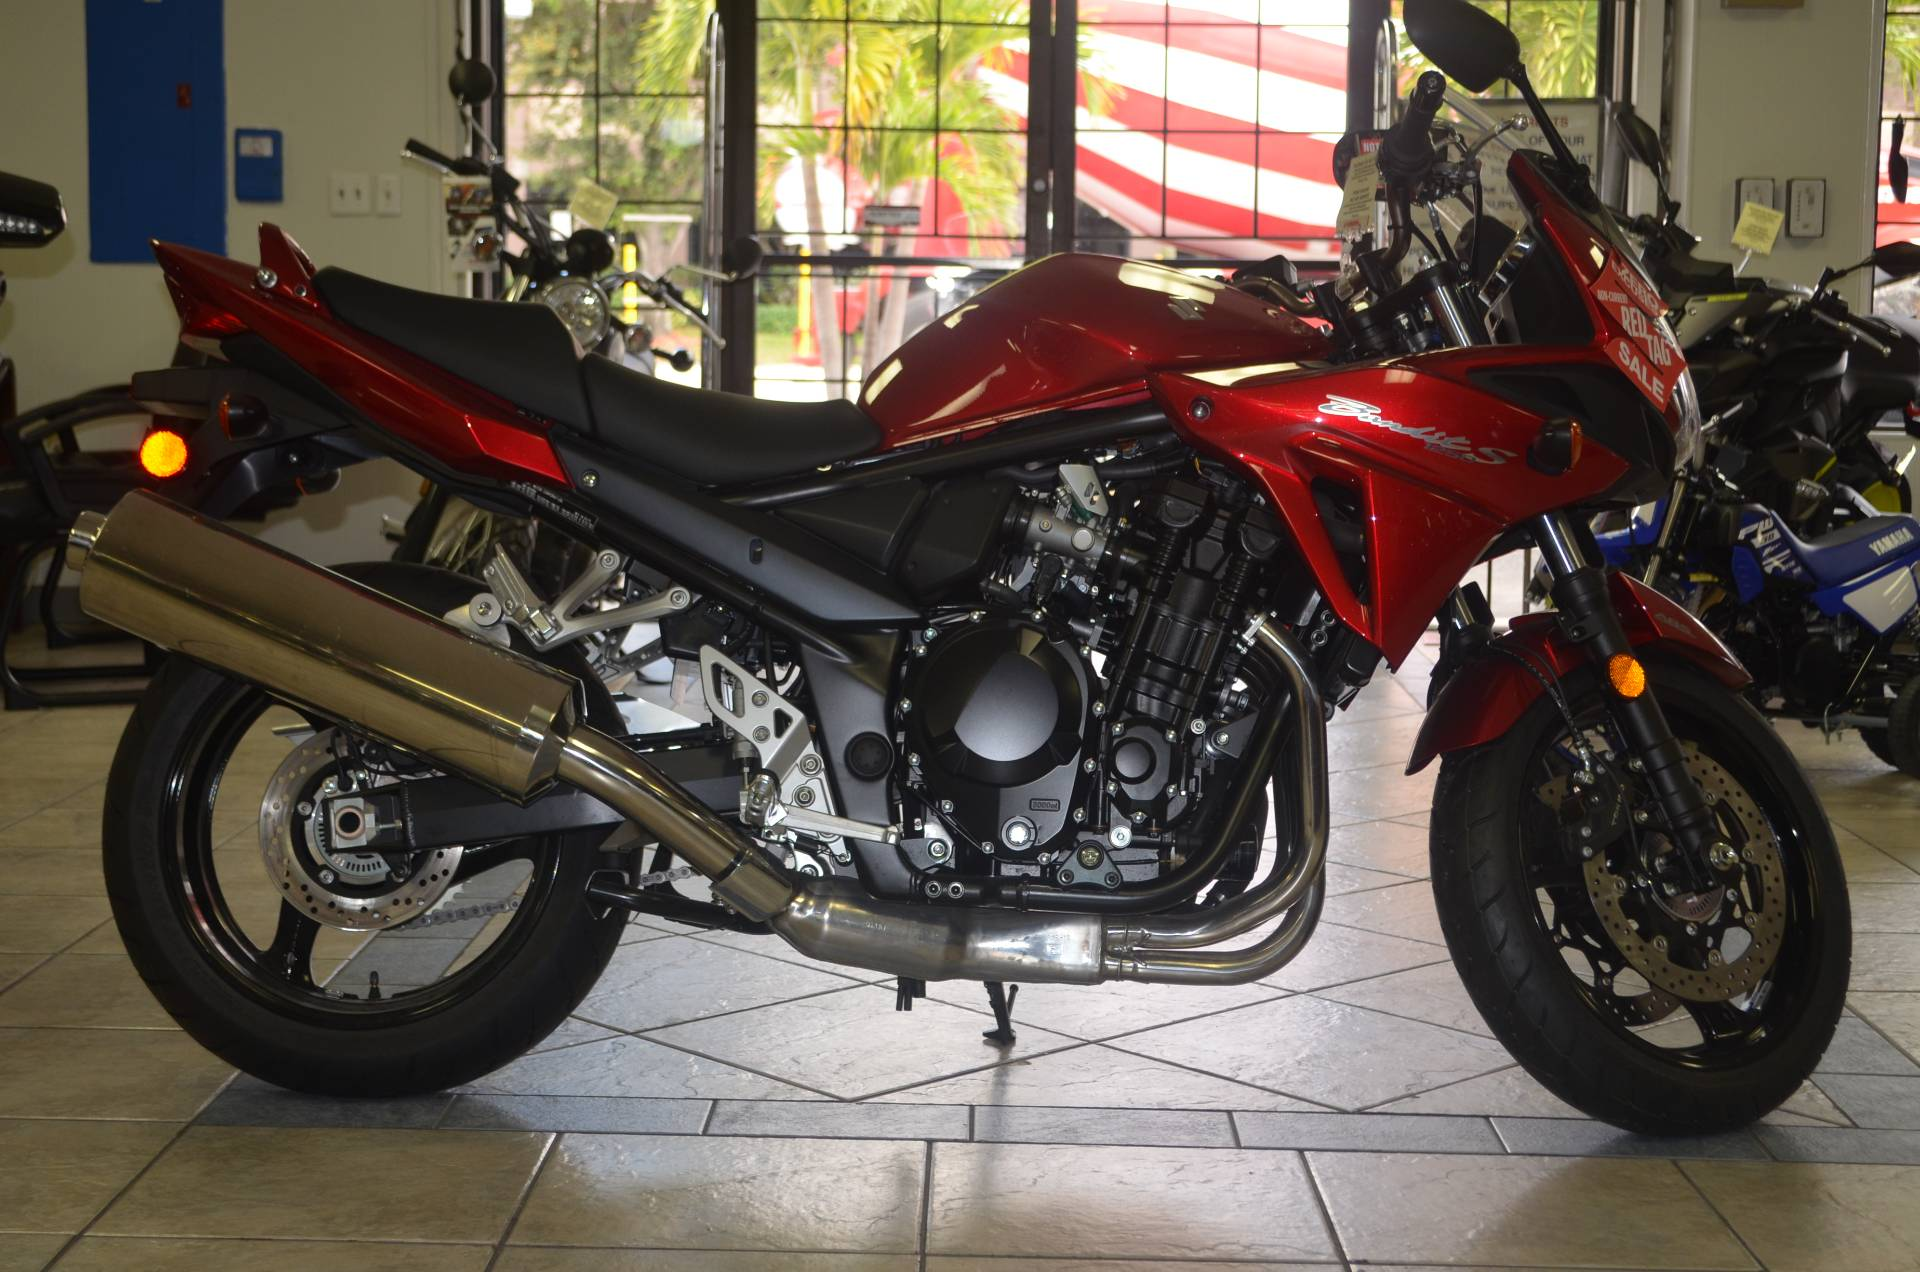 2016 Suzuki Bandit 1250S ABS in Miami, Florida